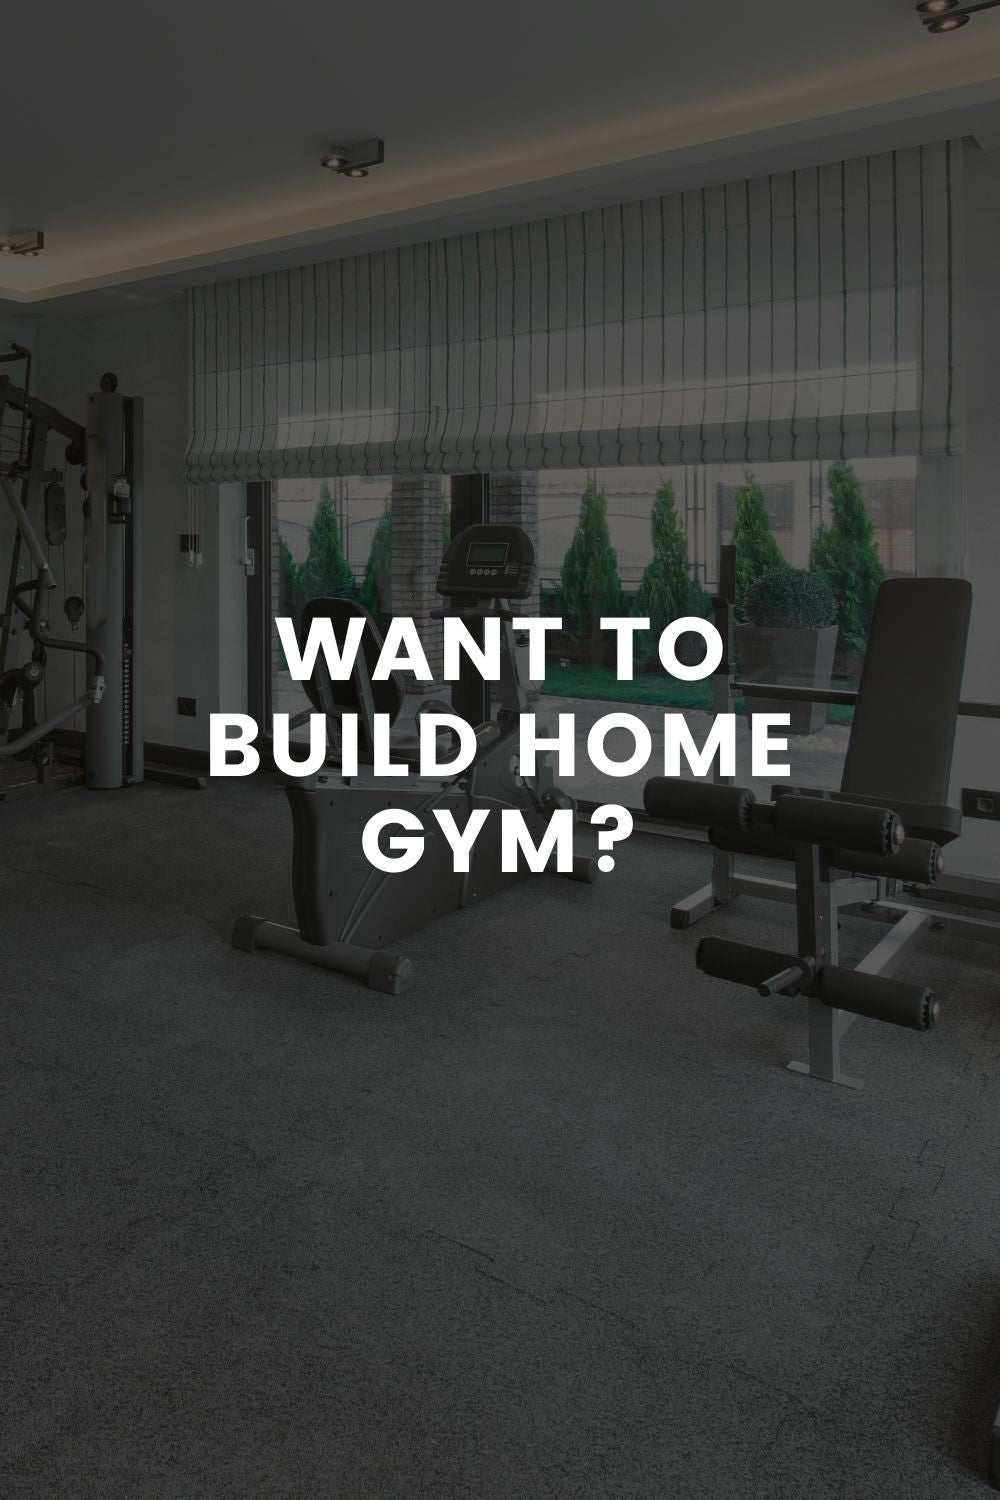 Want To Build Home Gym?